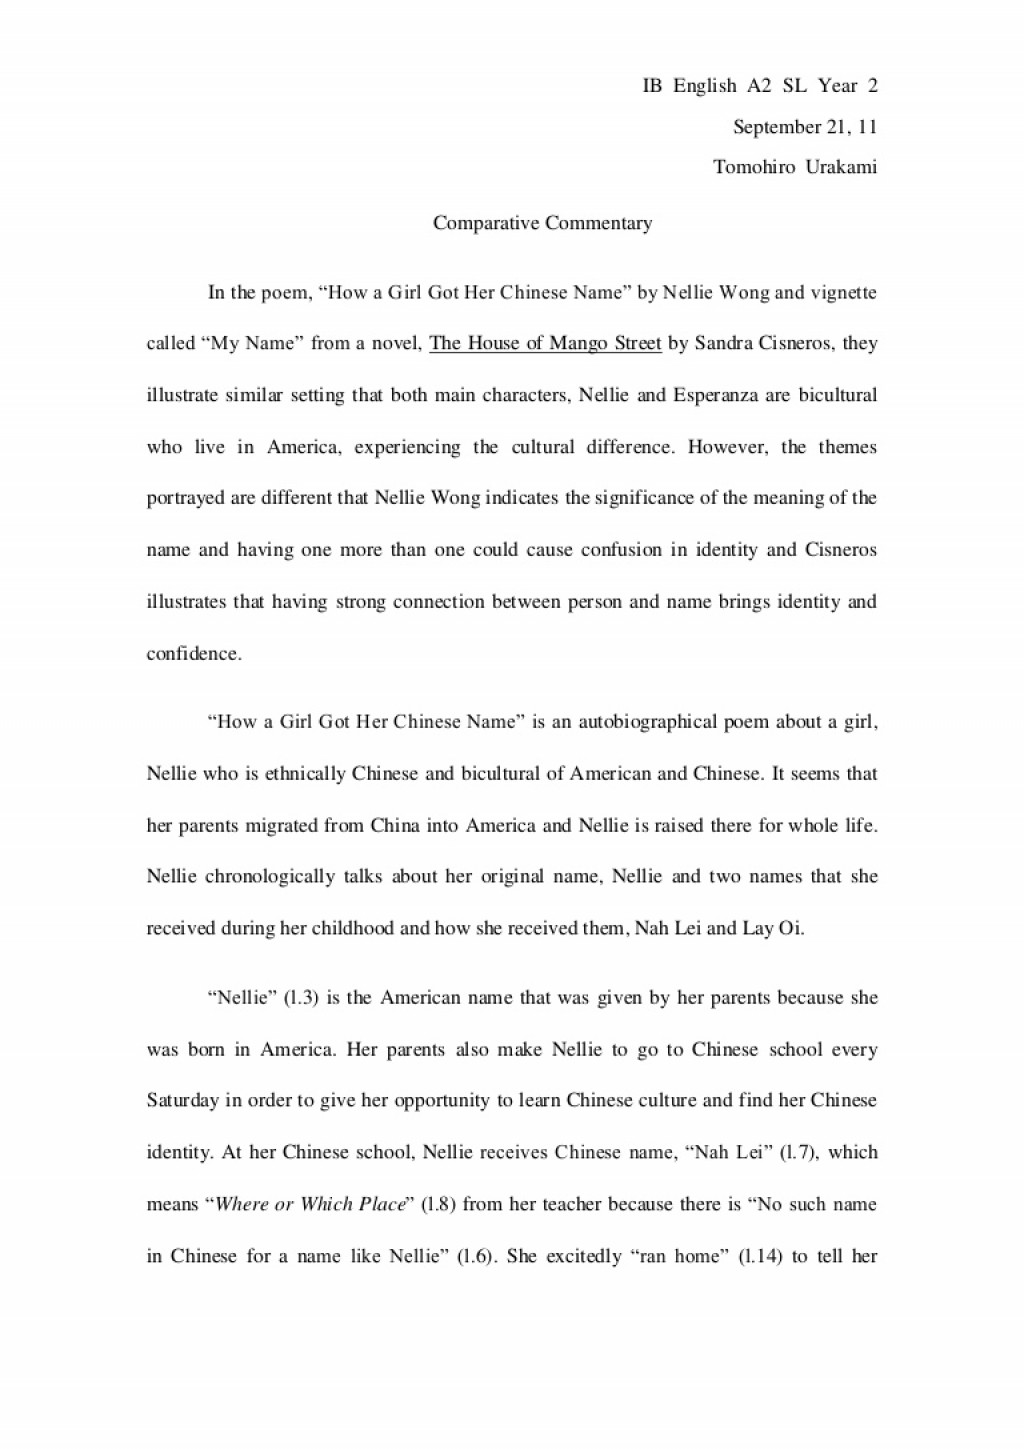 002 Comparative Essay Example Comparativeessaydraft Phpapp02 Thumbnail Frightening Pdf Thesis Literary Examples Large